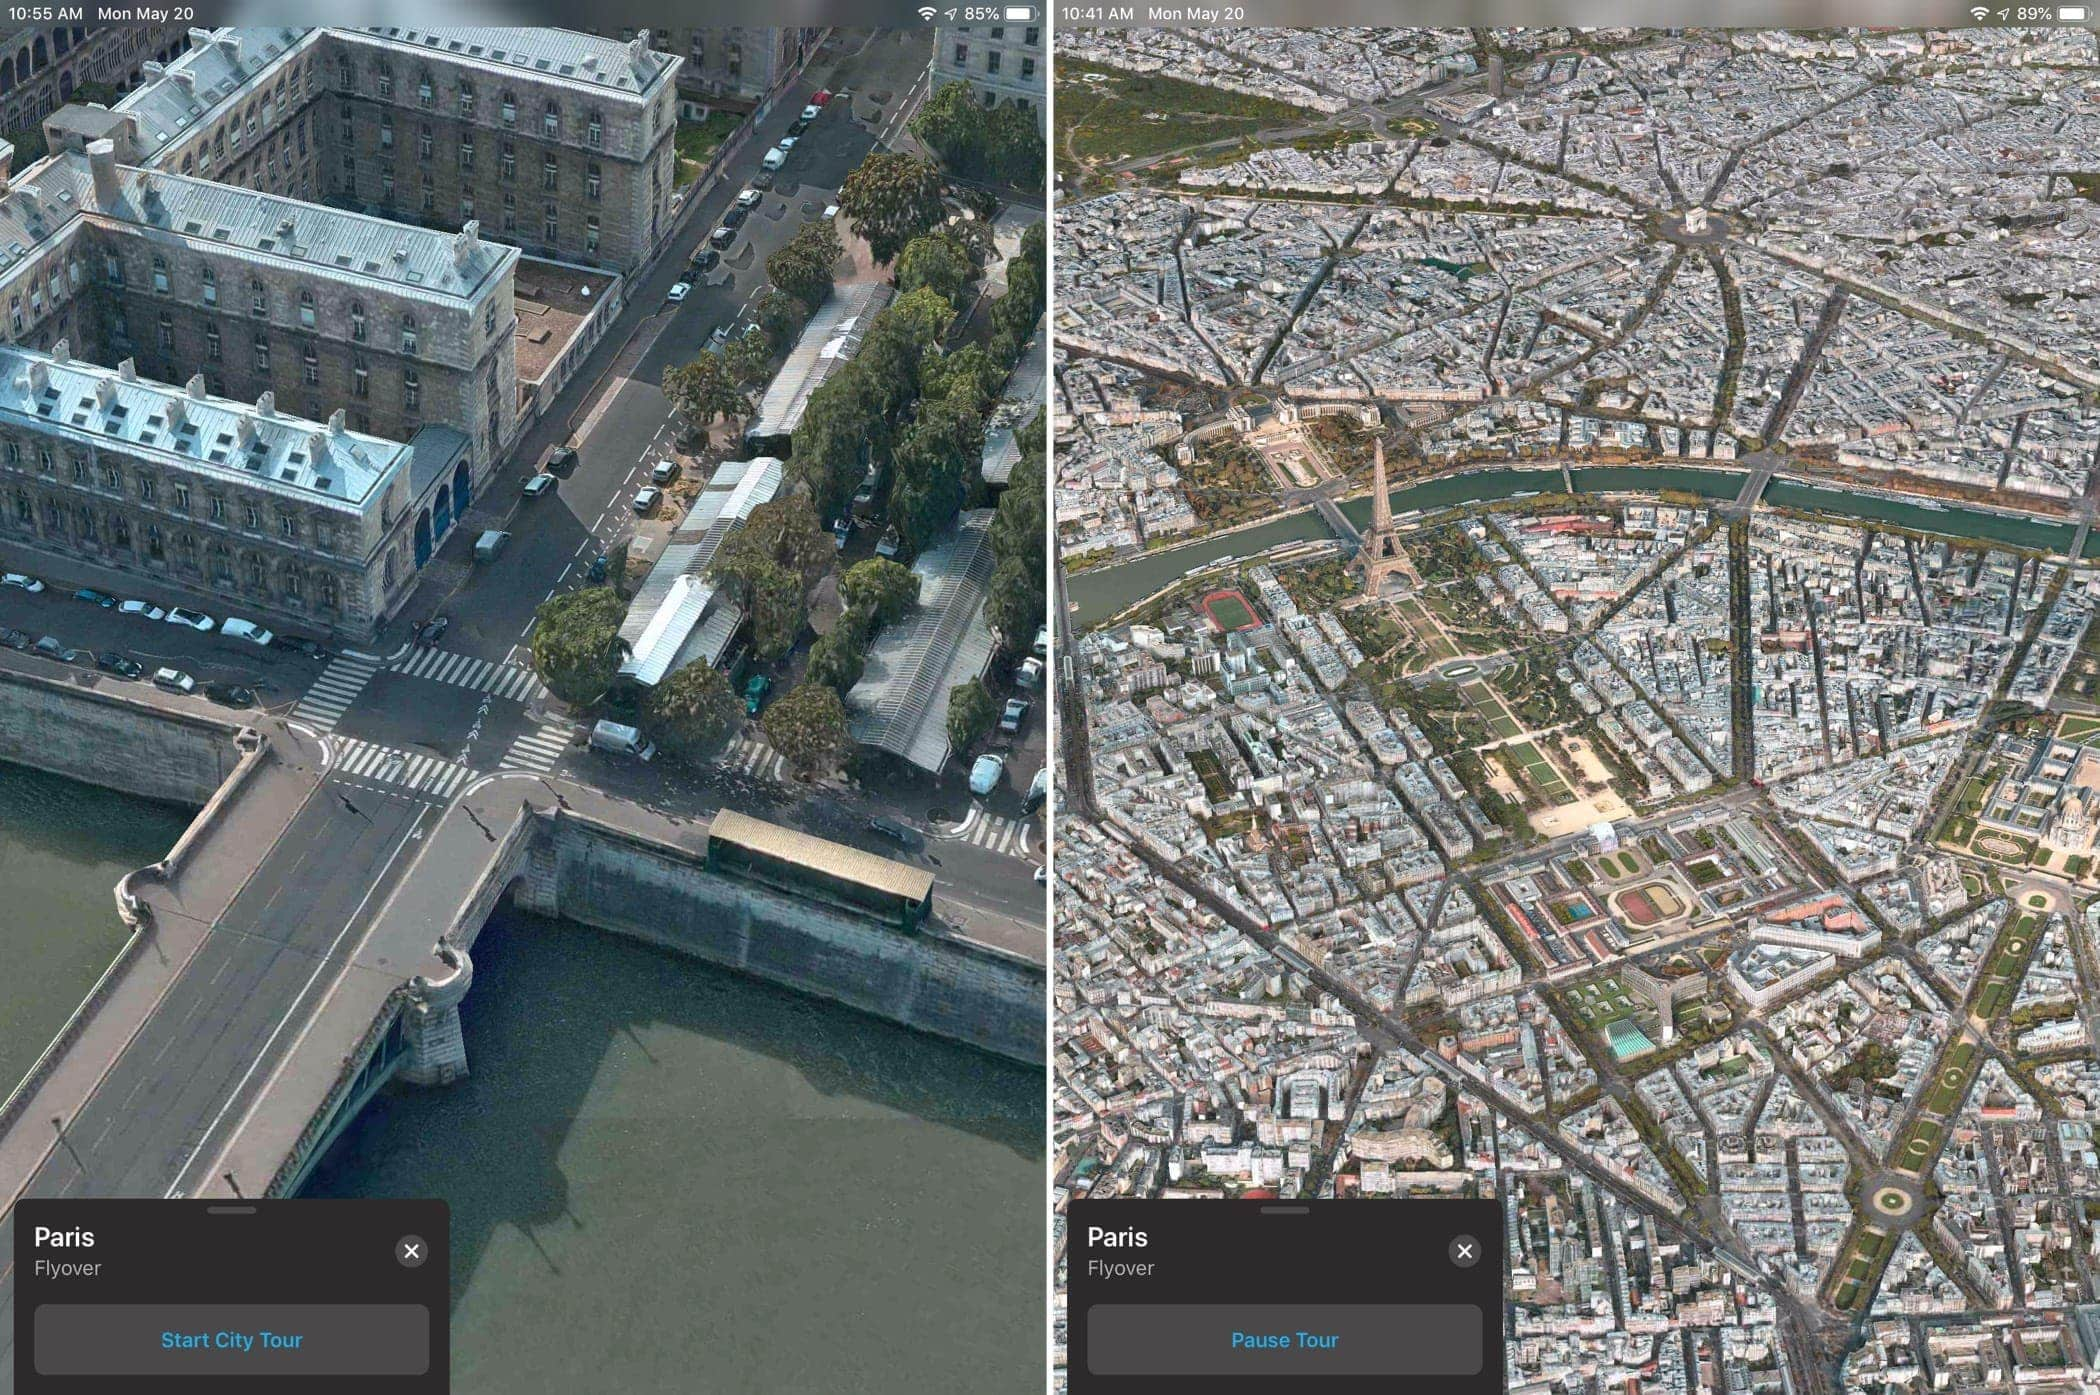 Apple Maps Flyover Paris Start Pause Tour